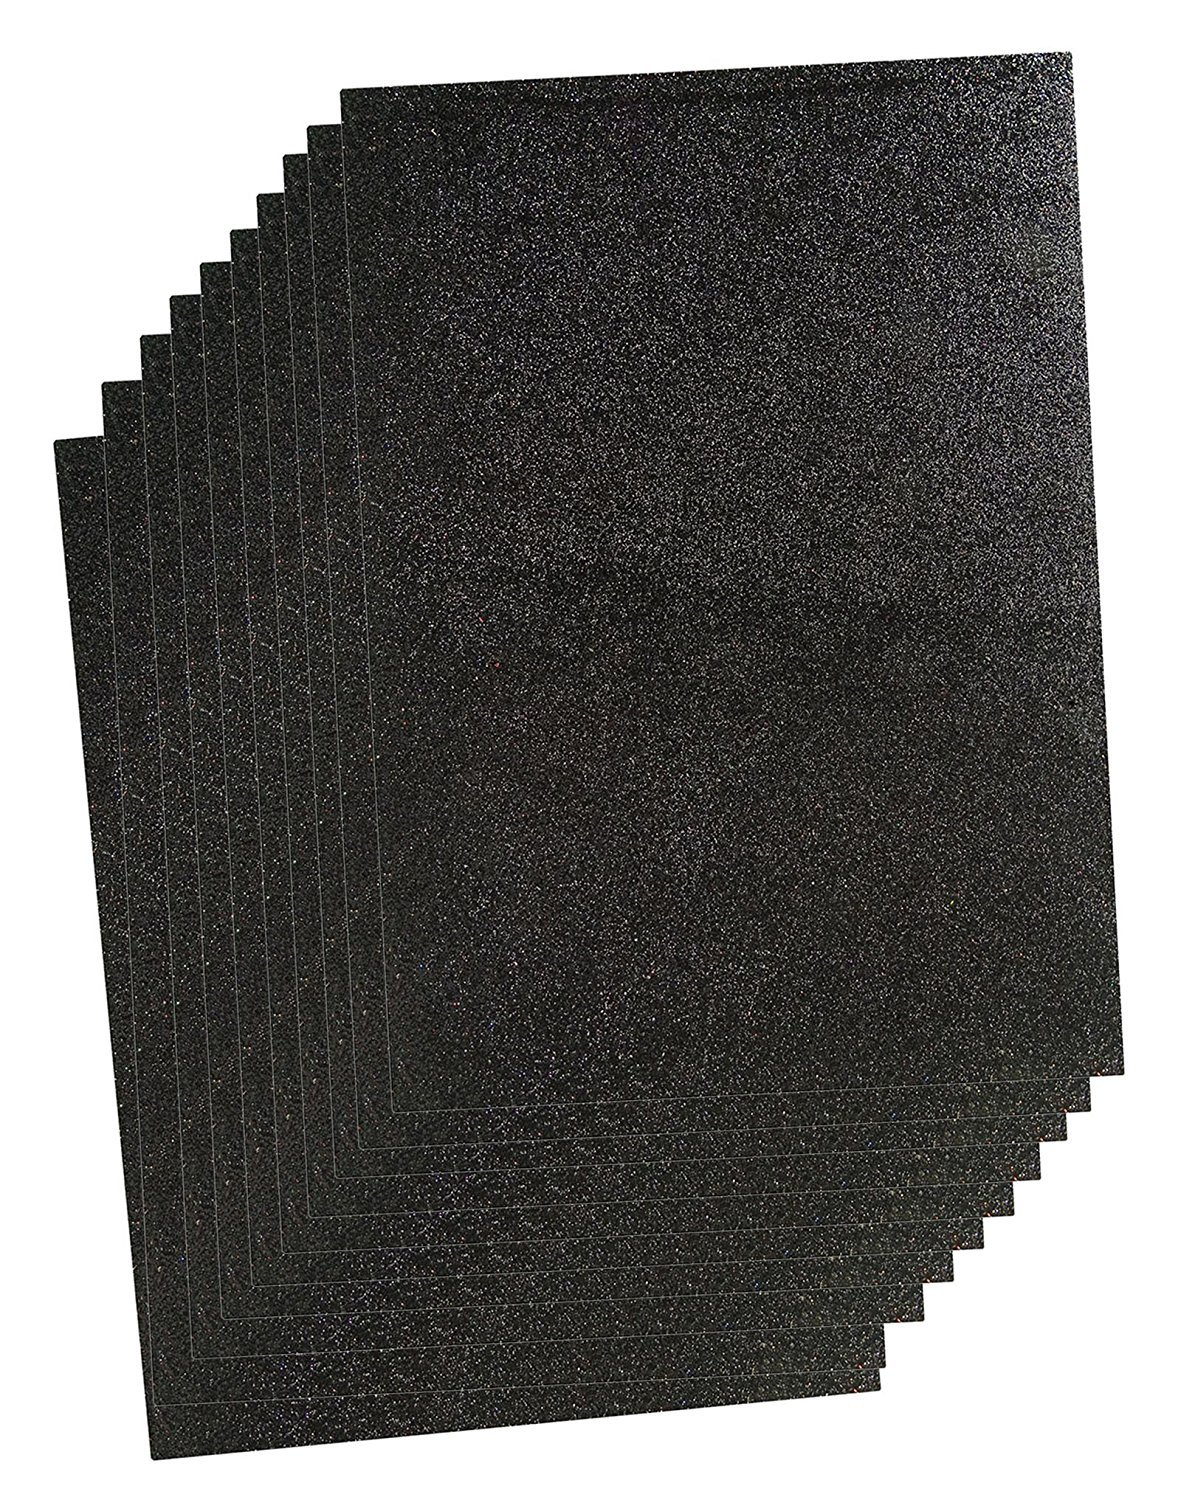 FOS EVA SHEET 50X70 2MM BLACK COLOUR